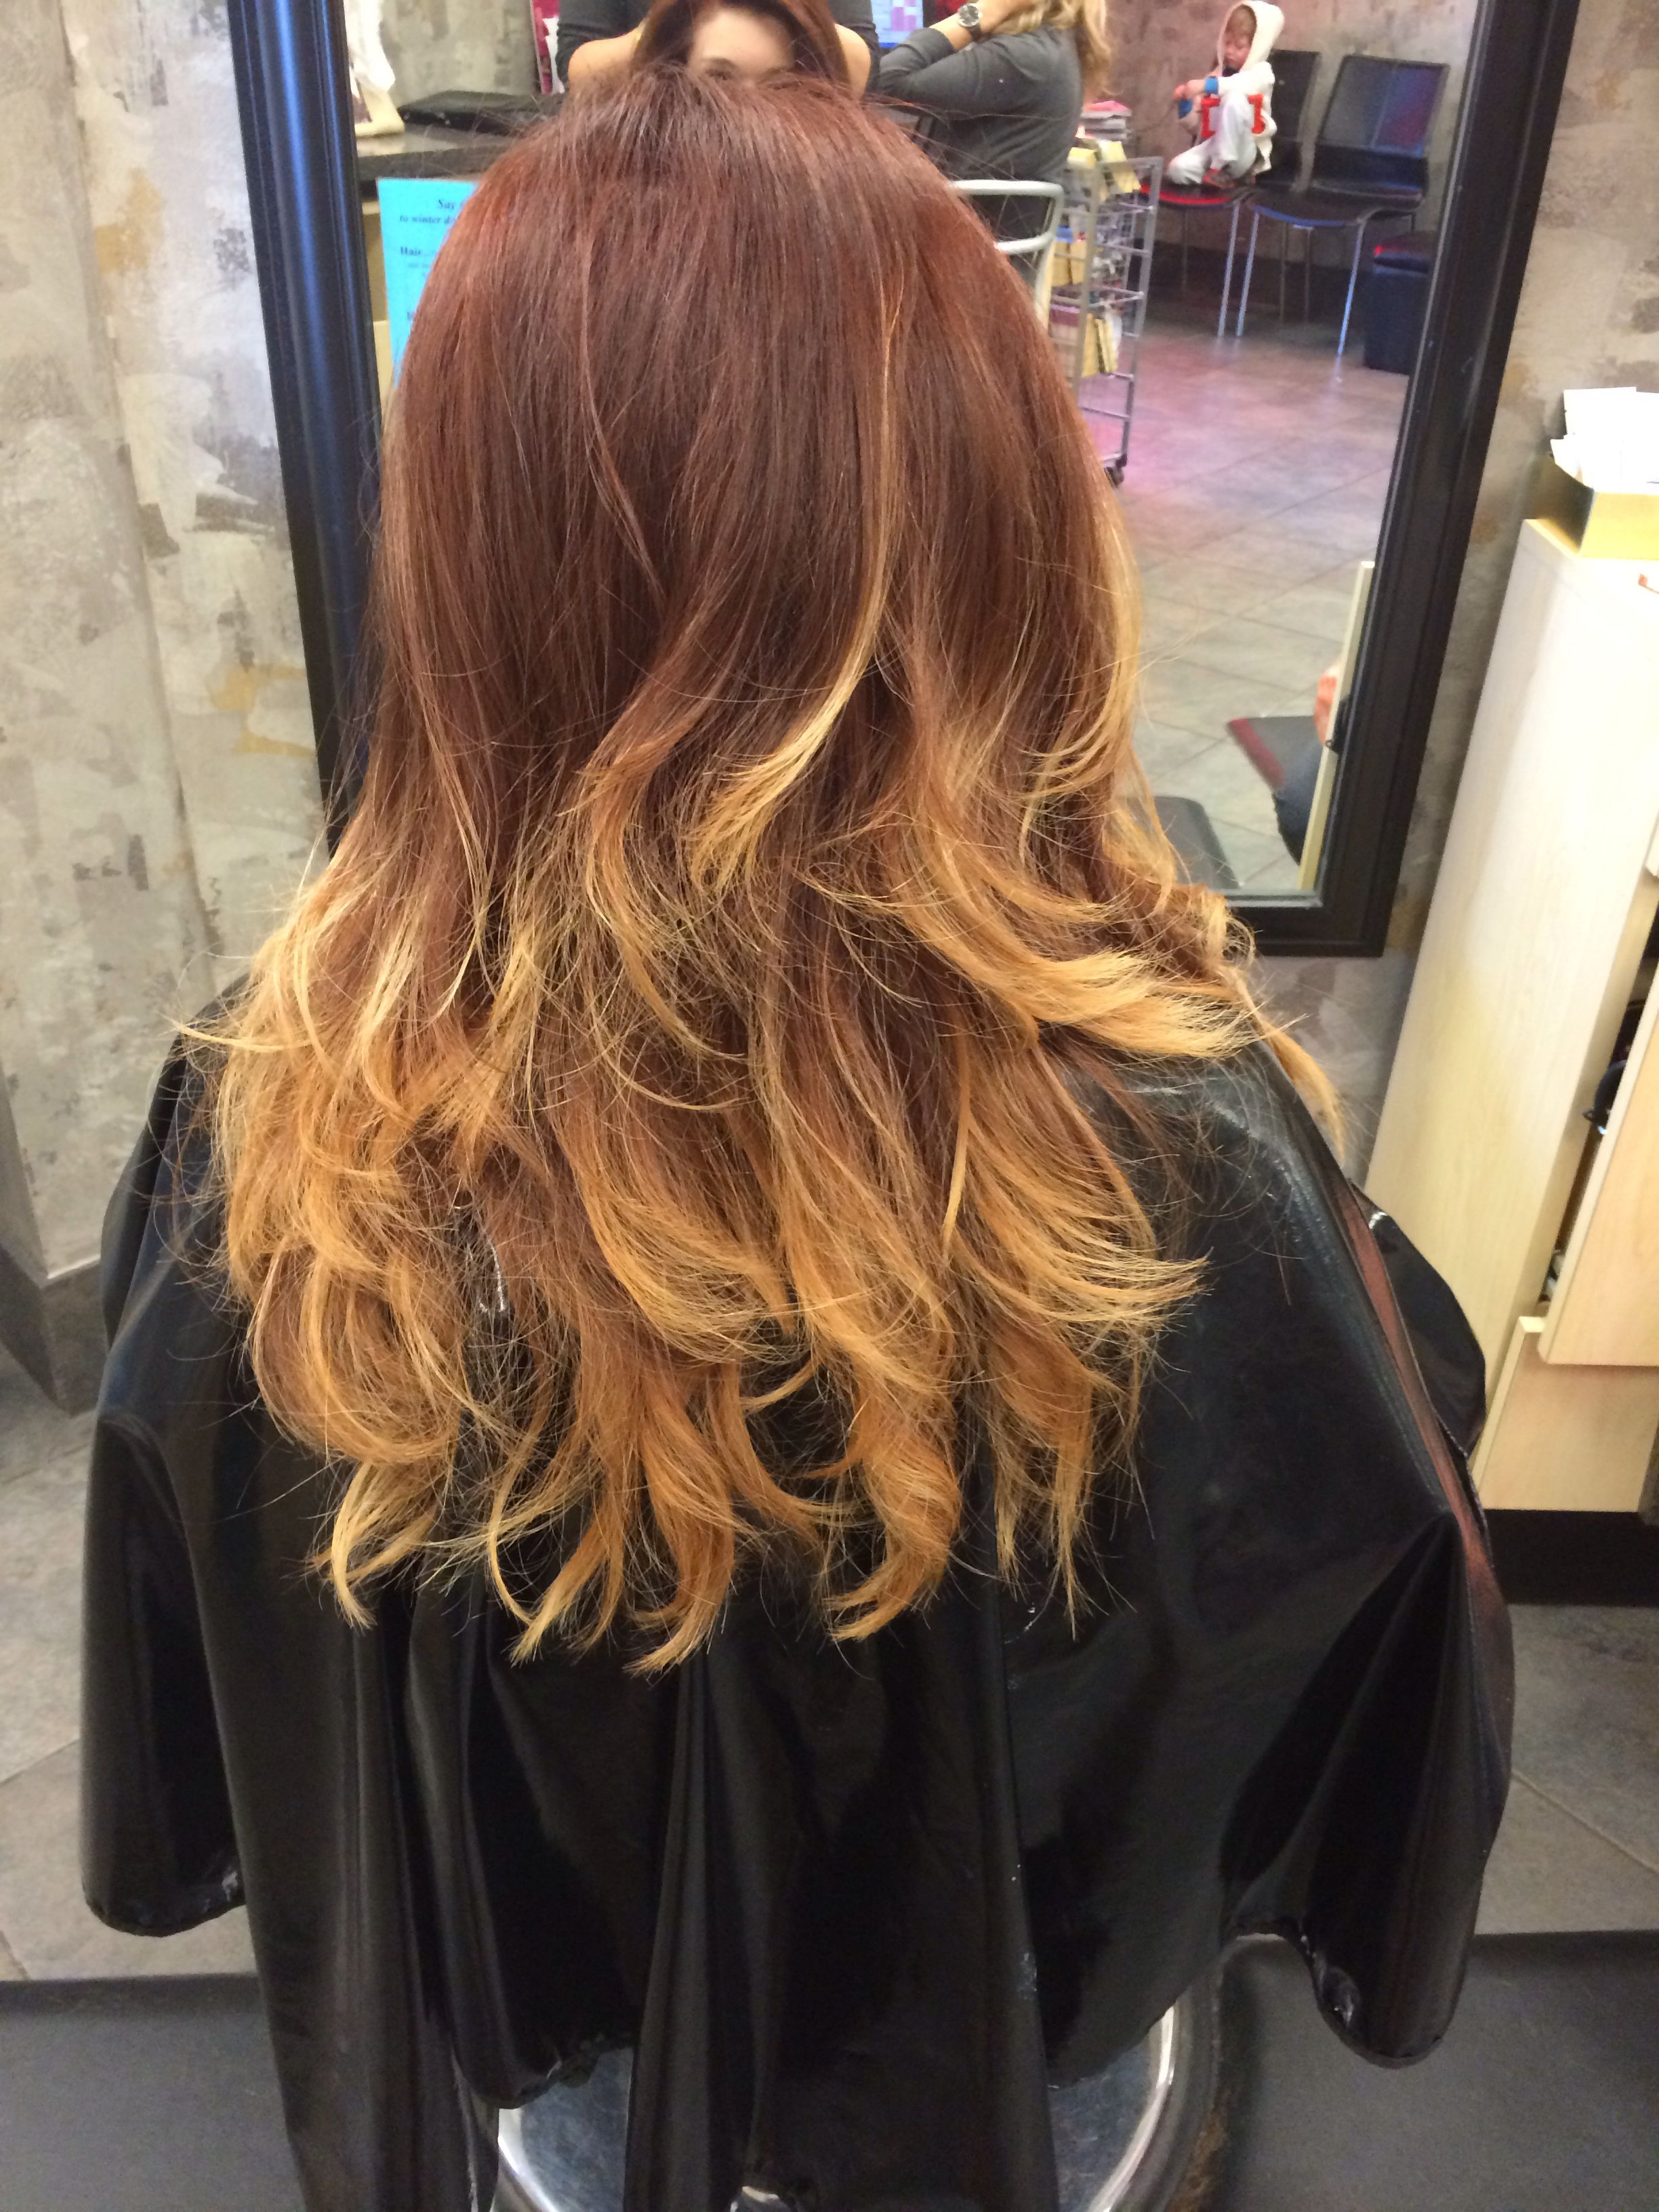 Pin by Shawn Sherry on Hair Artists Columbus, Ohio